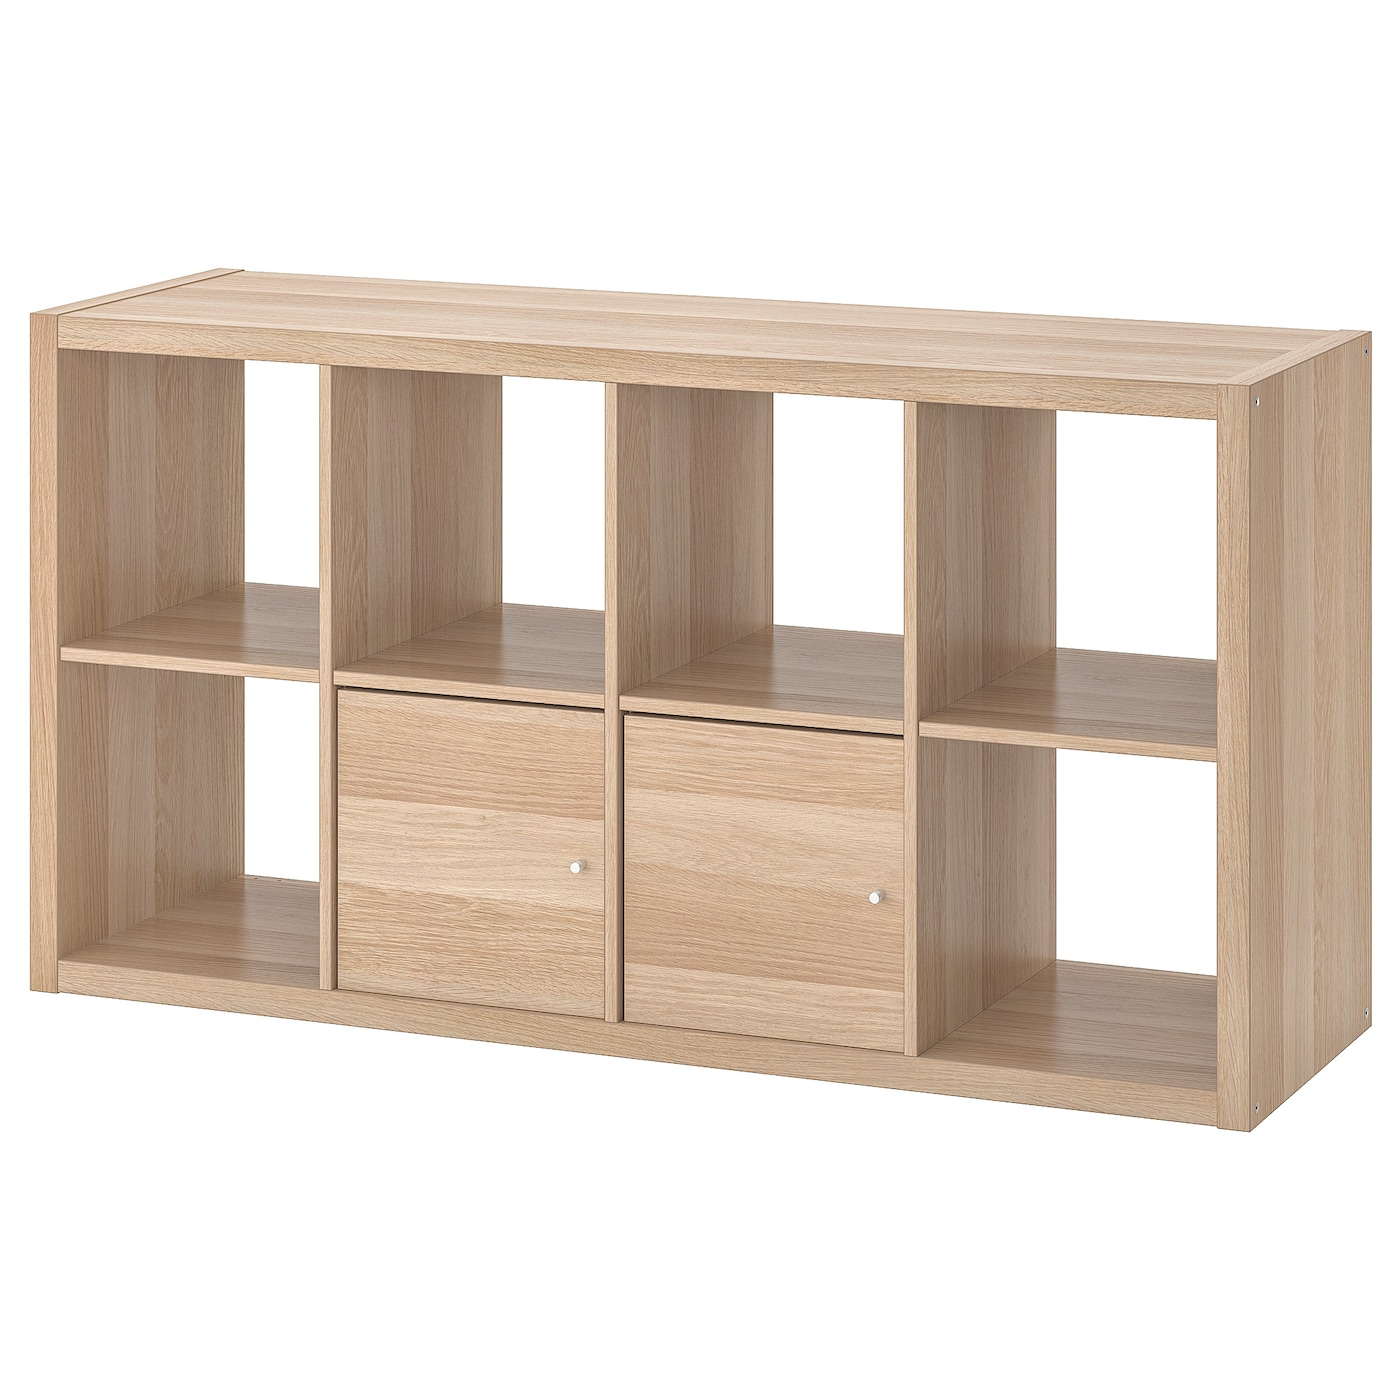 IKEA KALLAX shelving unit with doors